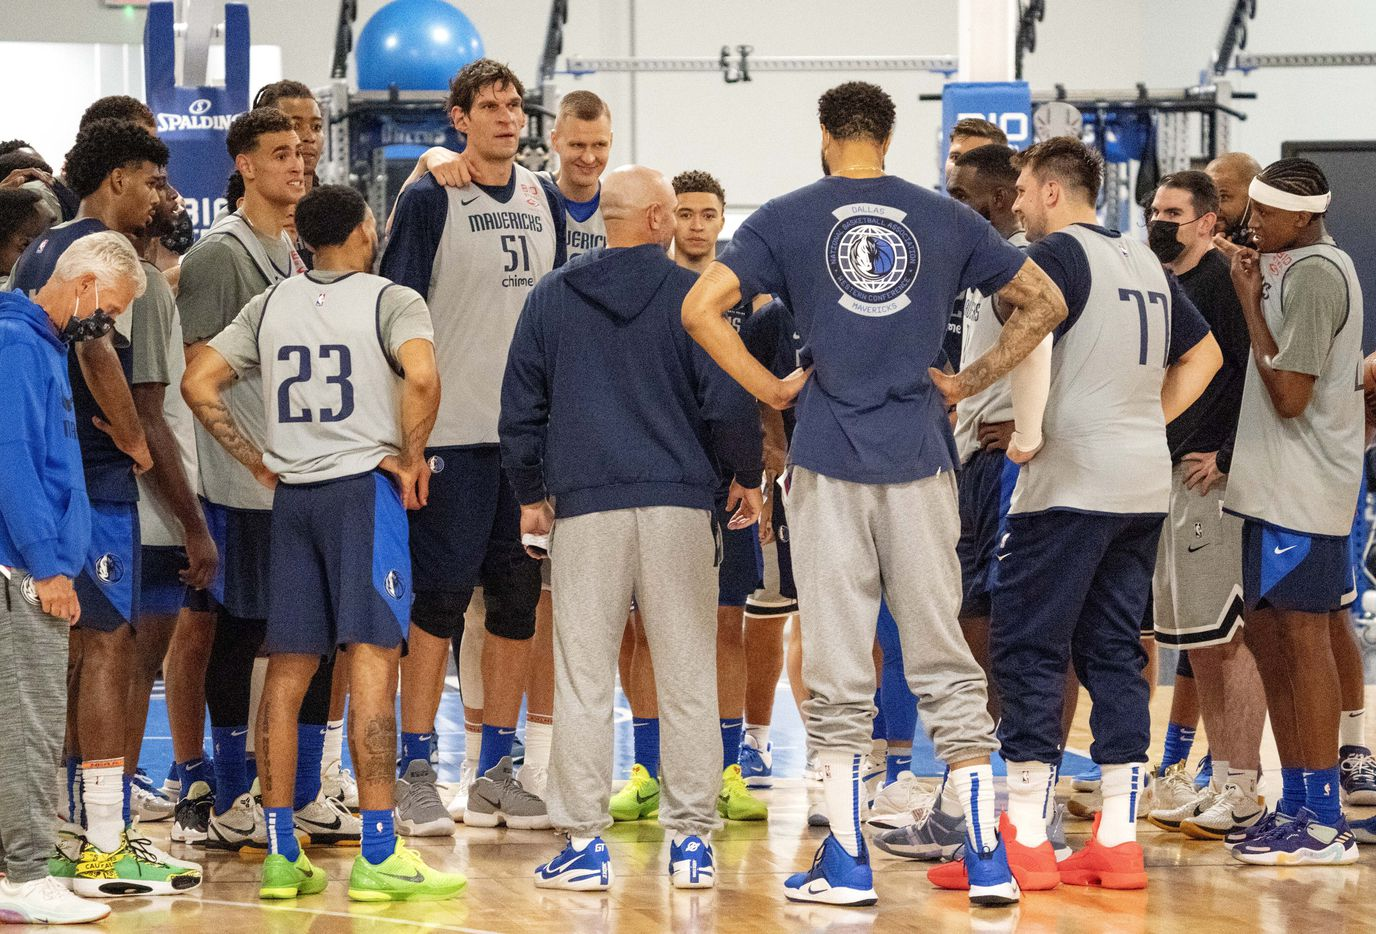 Dallas Mavericks head coach Jason Kidd, center, speaks to his team after a scrimmage during their first practice of training camp, Tuesday, September 28, 2021 at the Dallas Mavericks Training Center in Dallas. (Jeffrey McWhorter/Special Contributor)